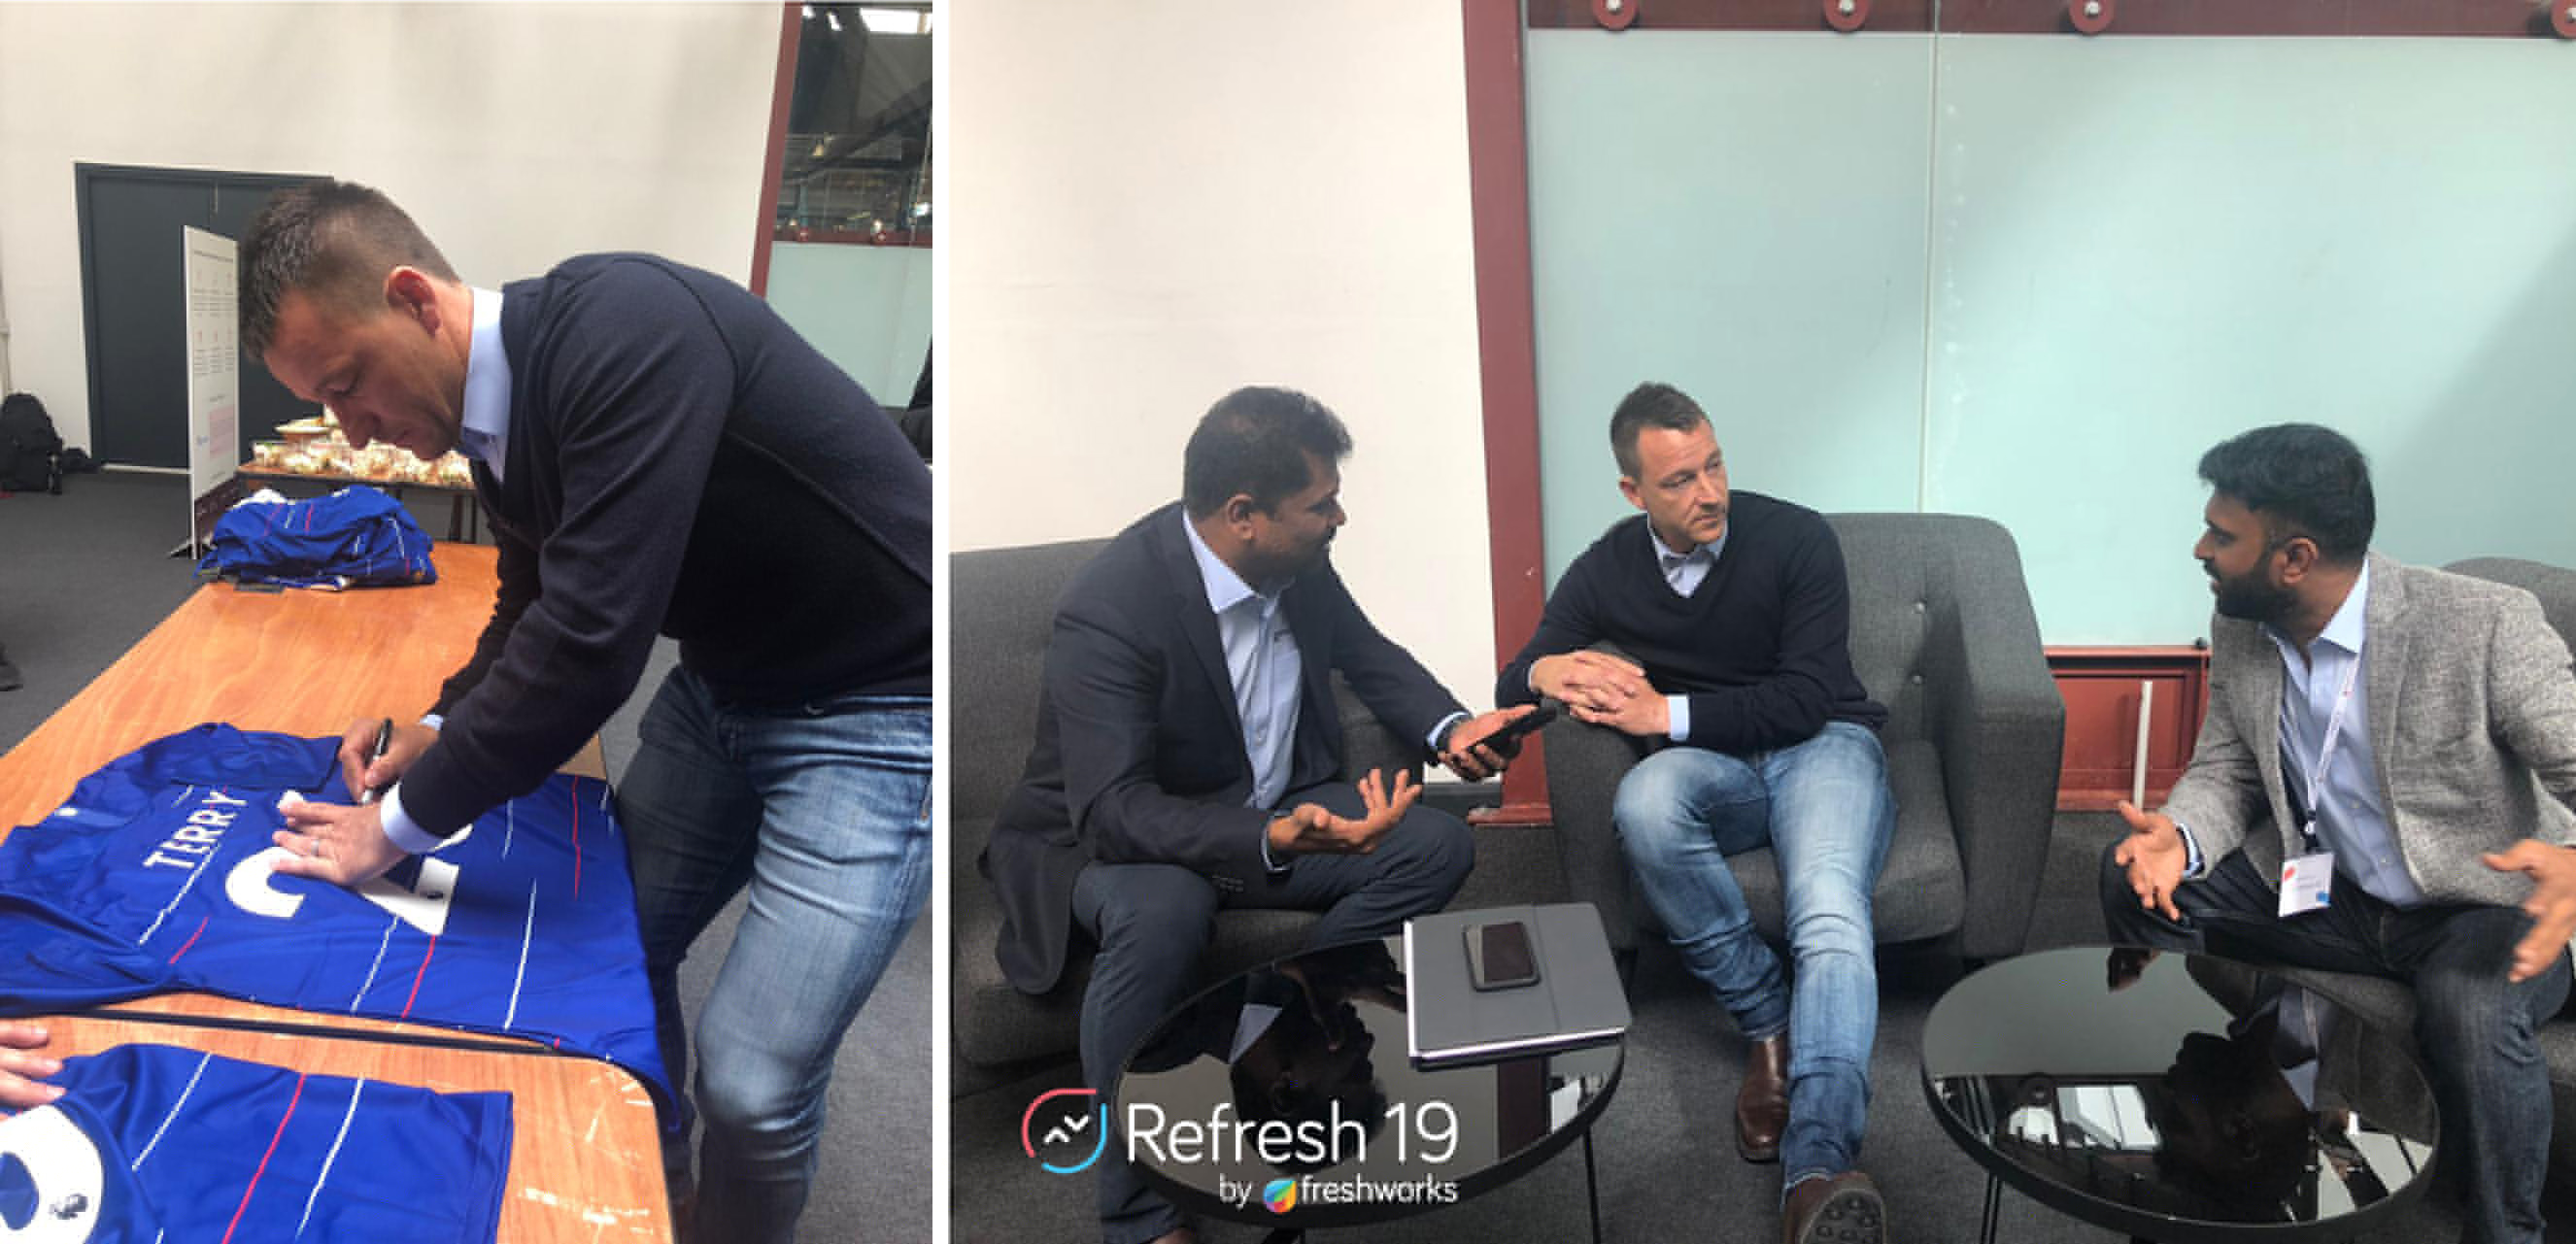 john-terry-at-refresh-19-freshworks'-user-conference